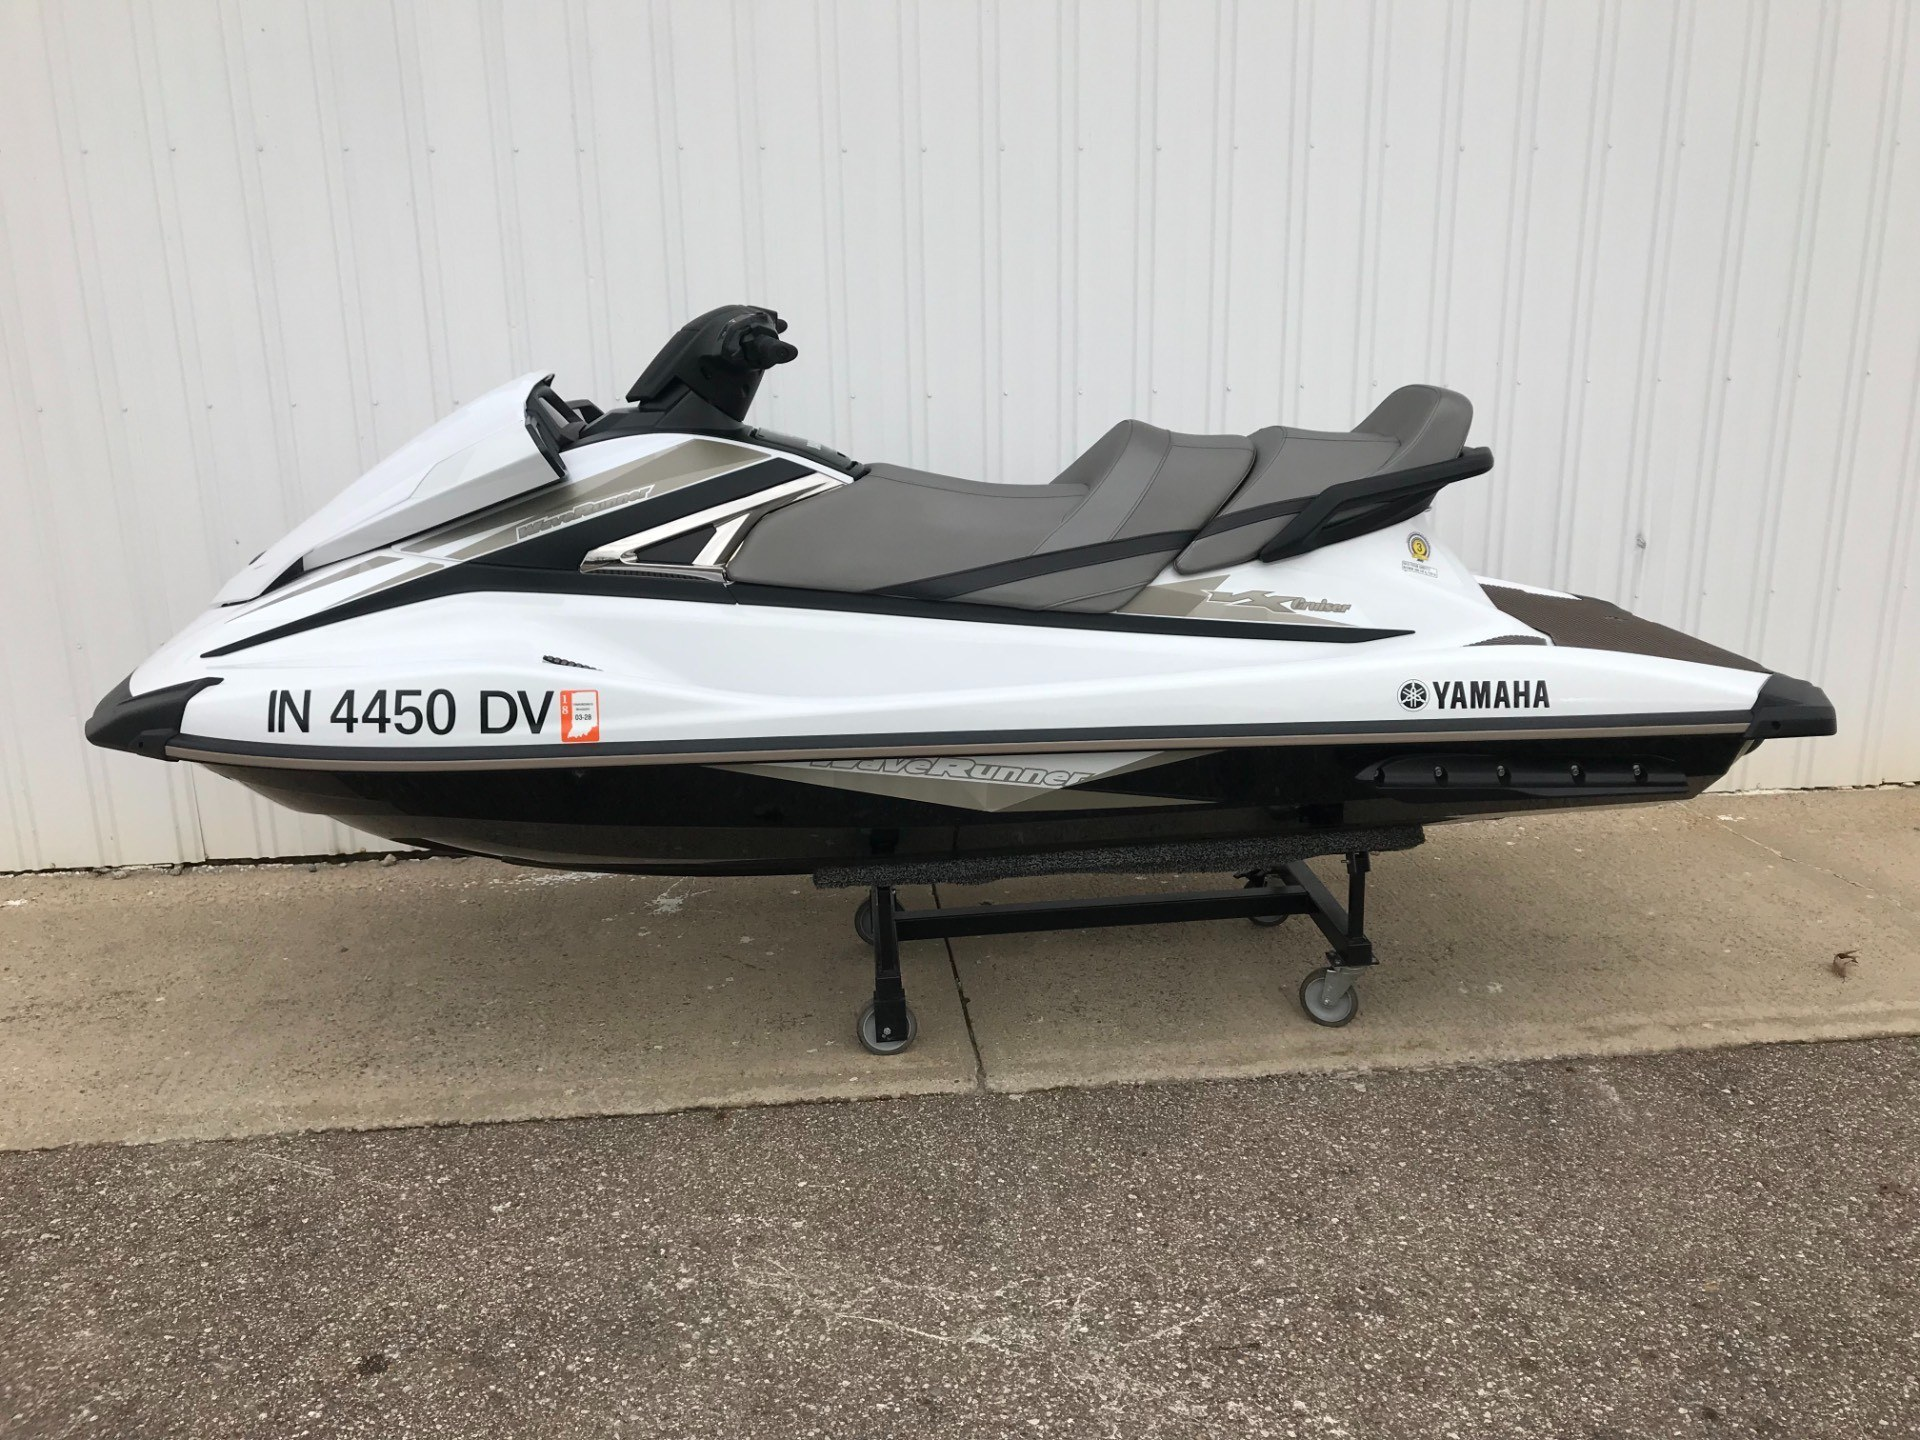 2015 Yamaha VX Cruiser for sale 104940